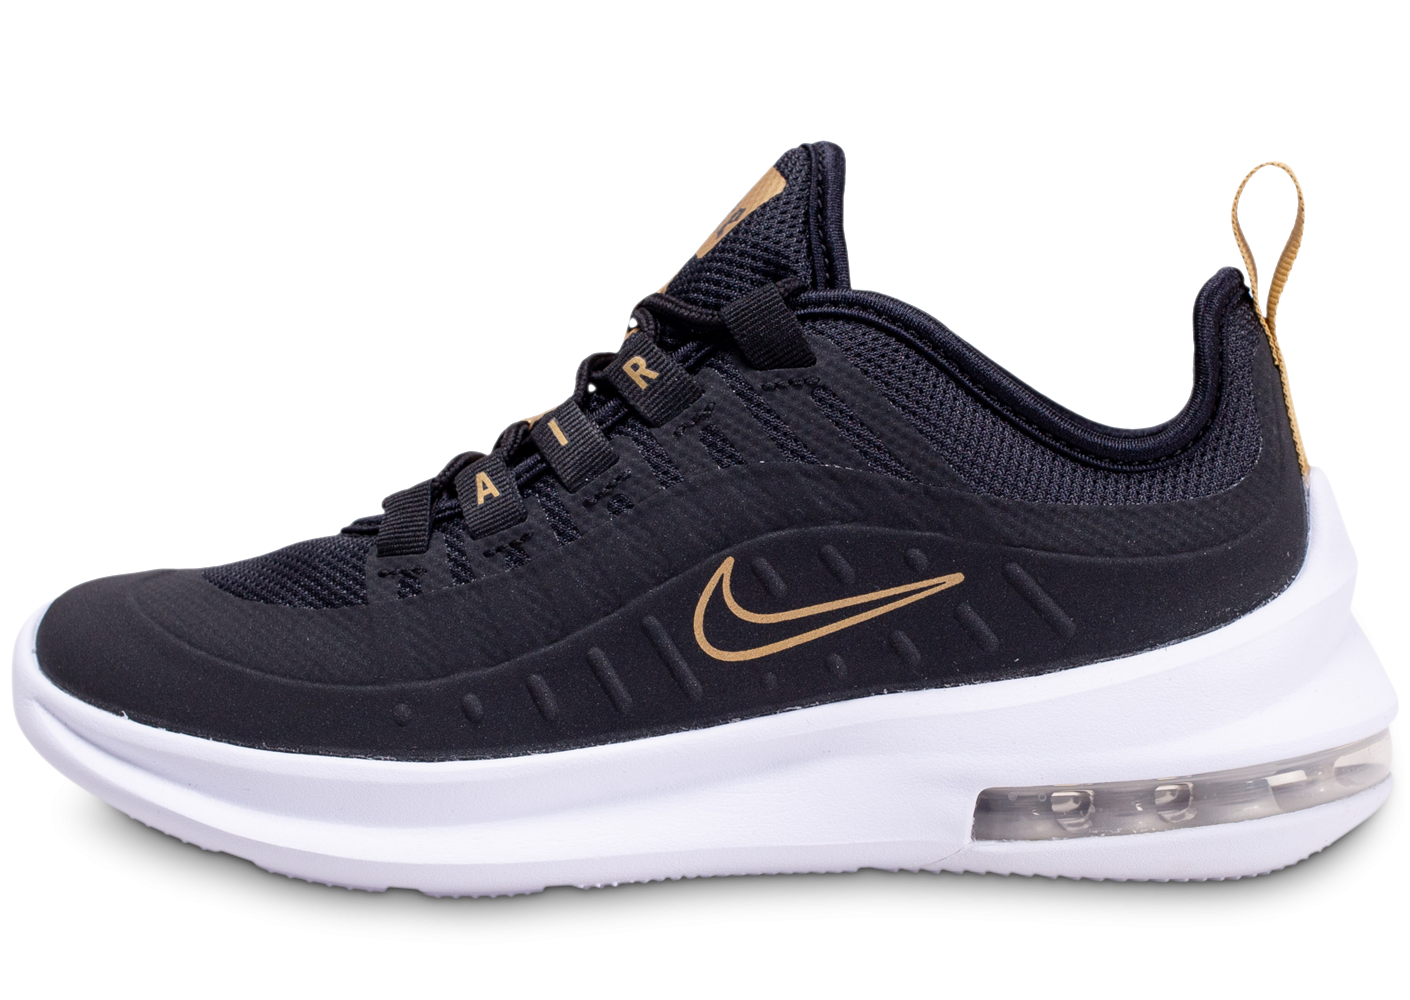 Nike Air Max Axis Noire Blanche et Or Junior